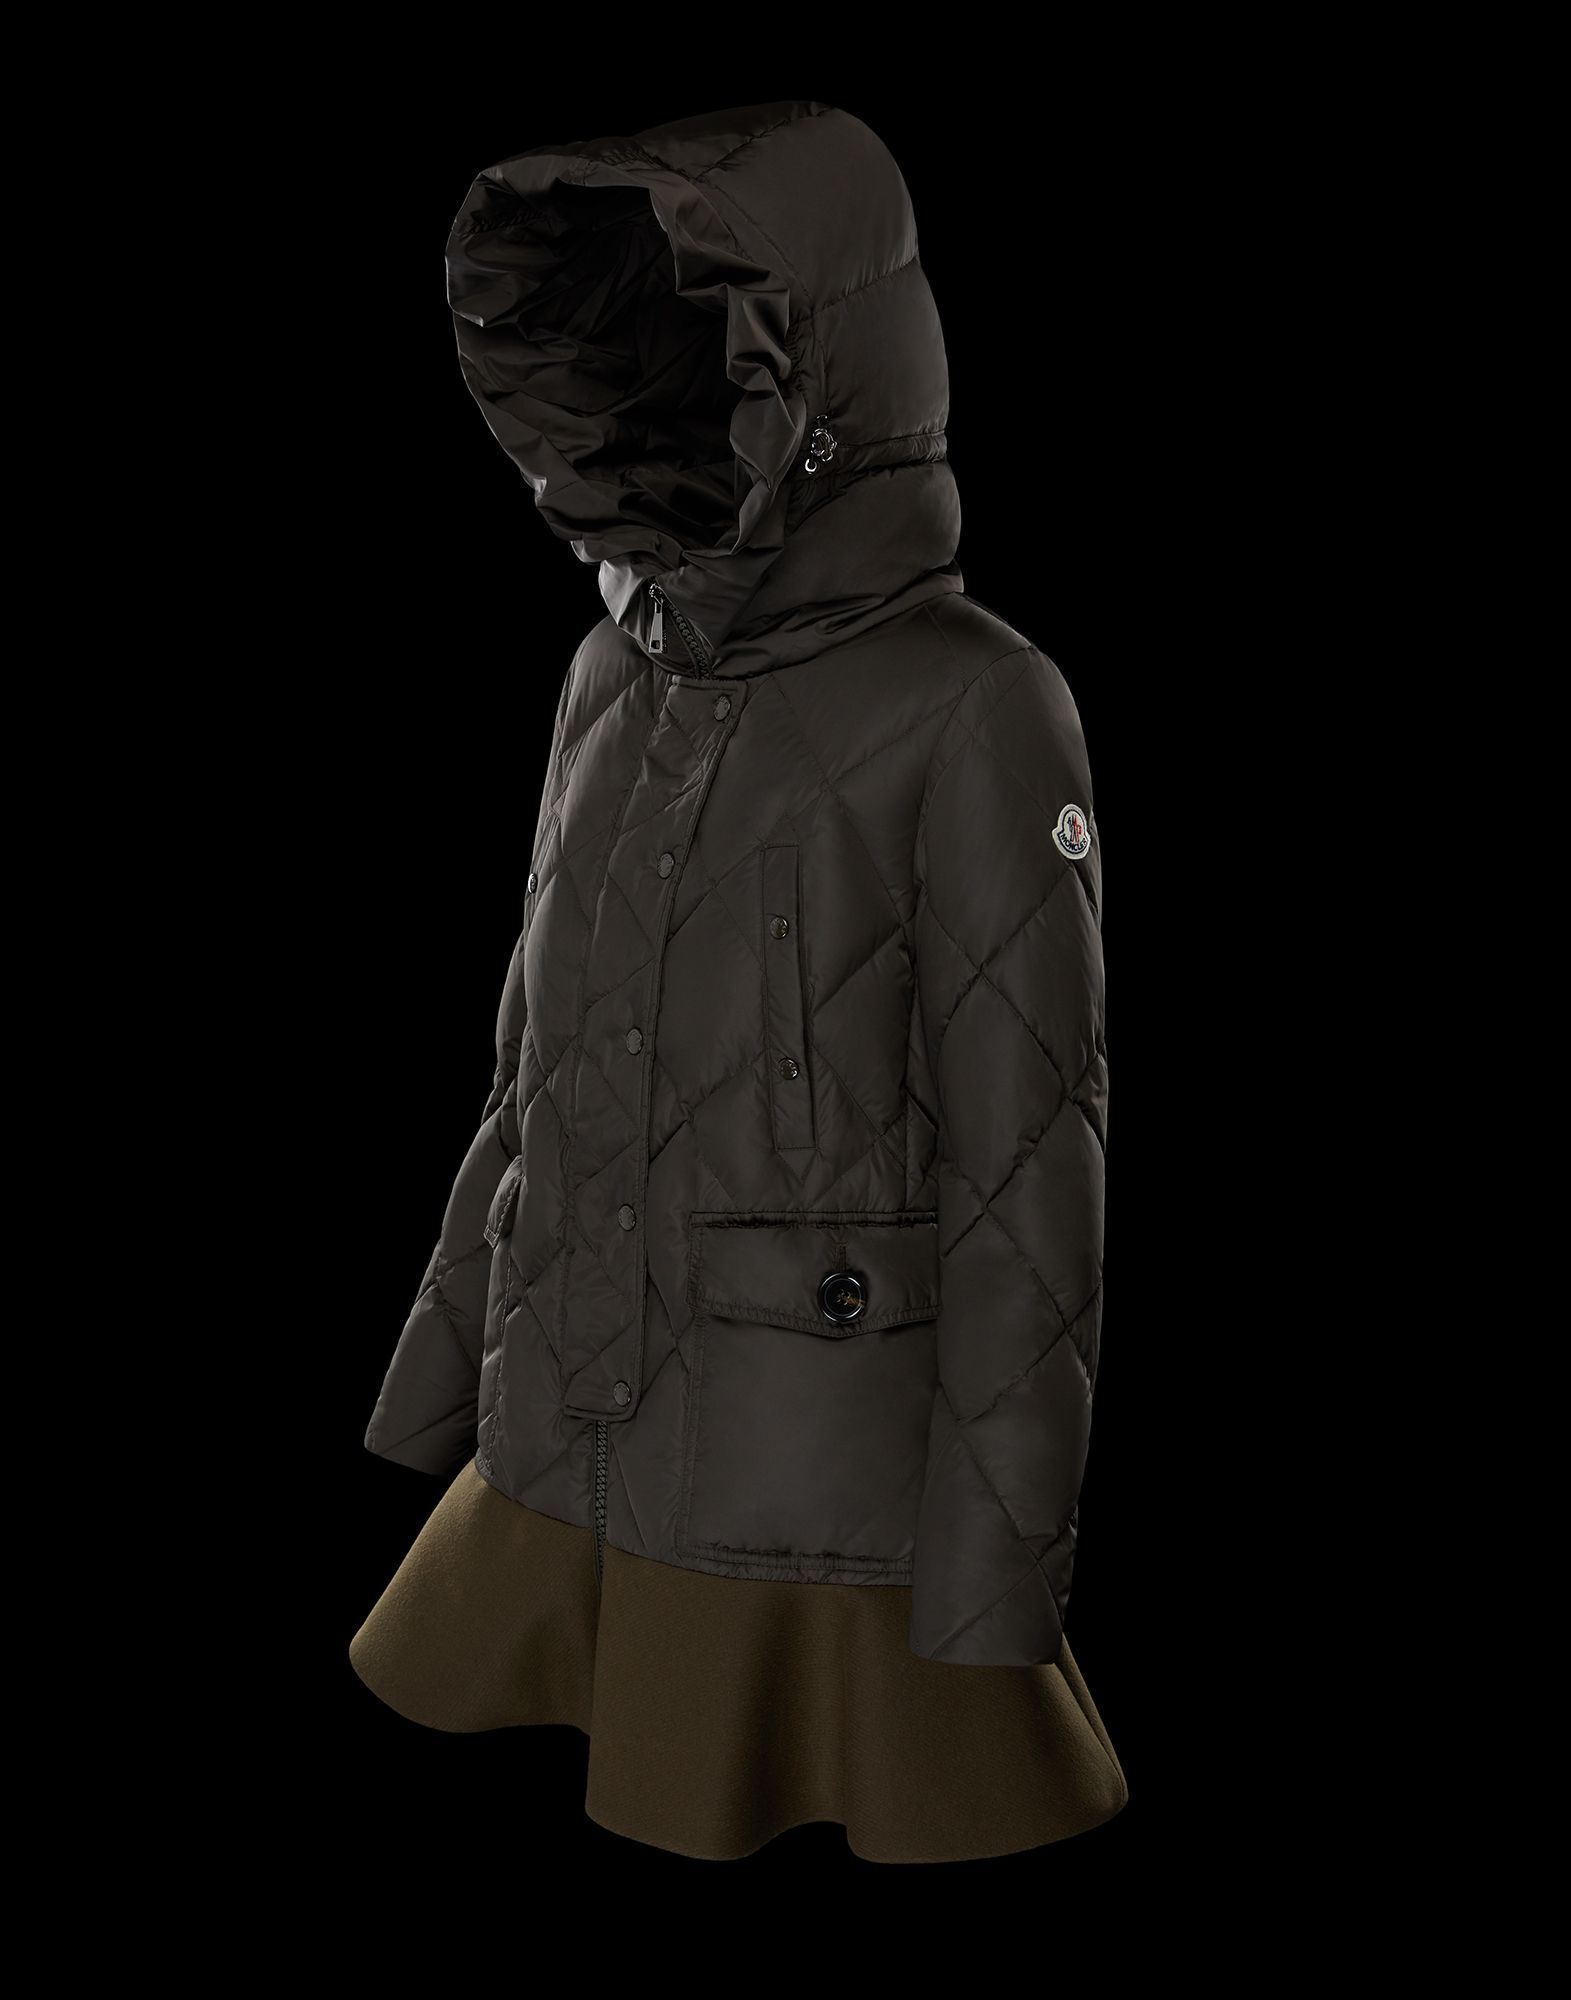 be5cd76f28af MONCLER Down Jackets TOP seller Award 17 18 winter MONCLER VAULOGETTE    dark 3